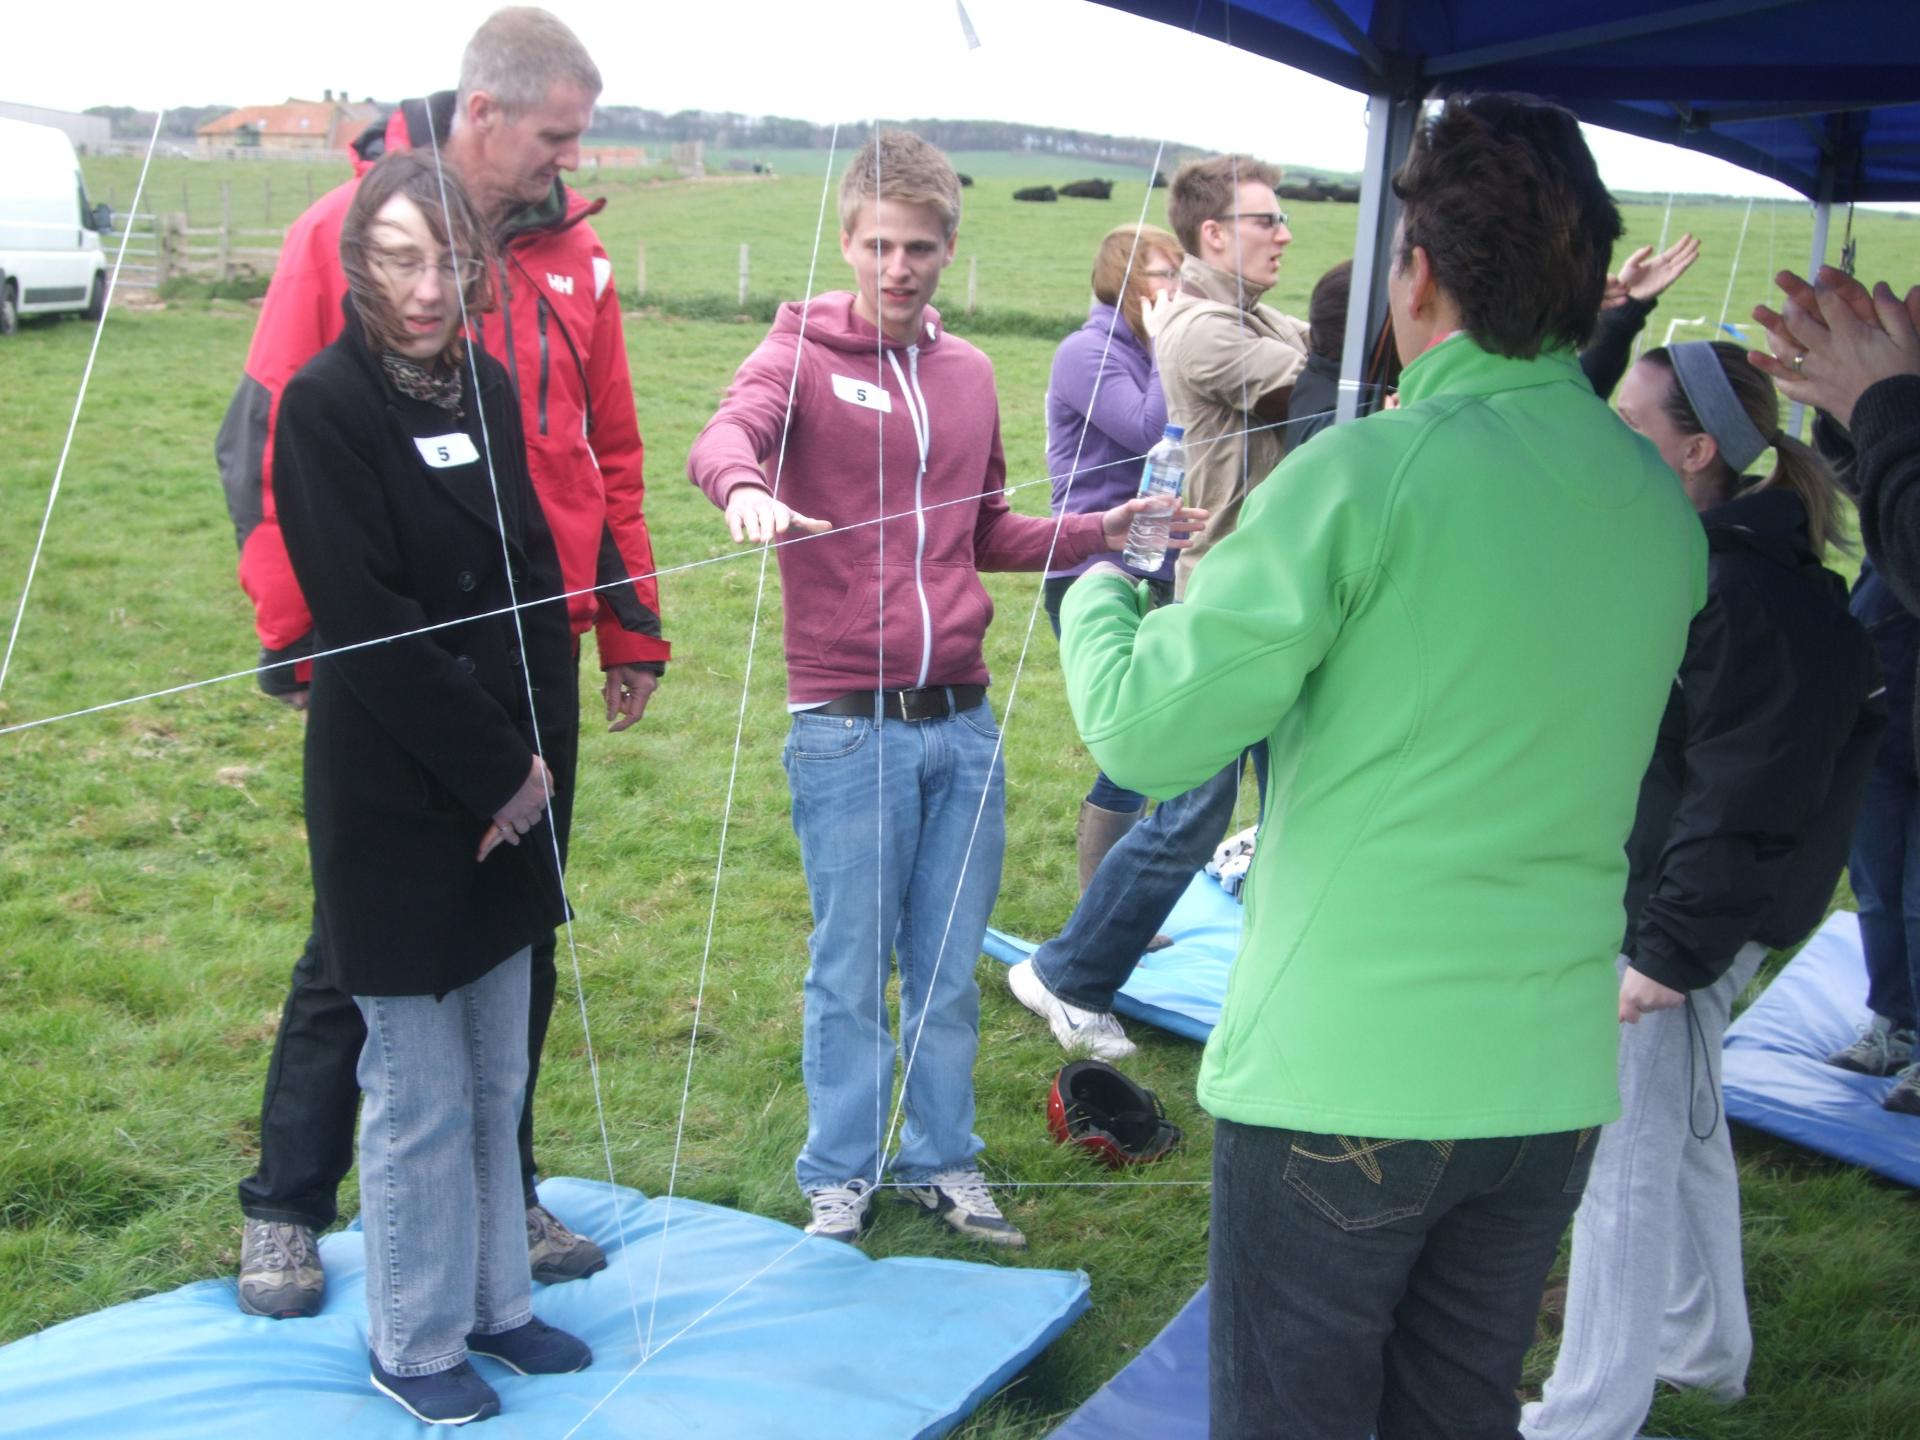 Team Building Crystal Challenge with DE Ford Insurance Brokers